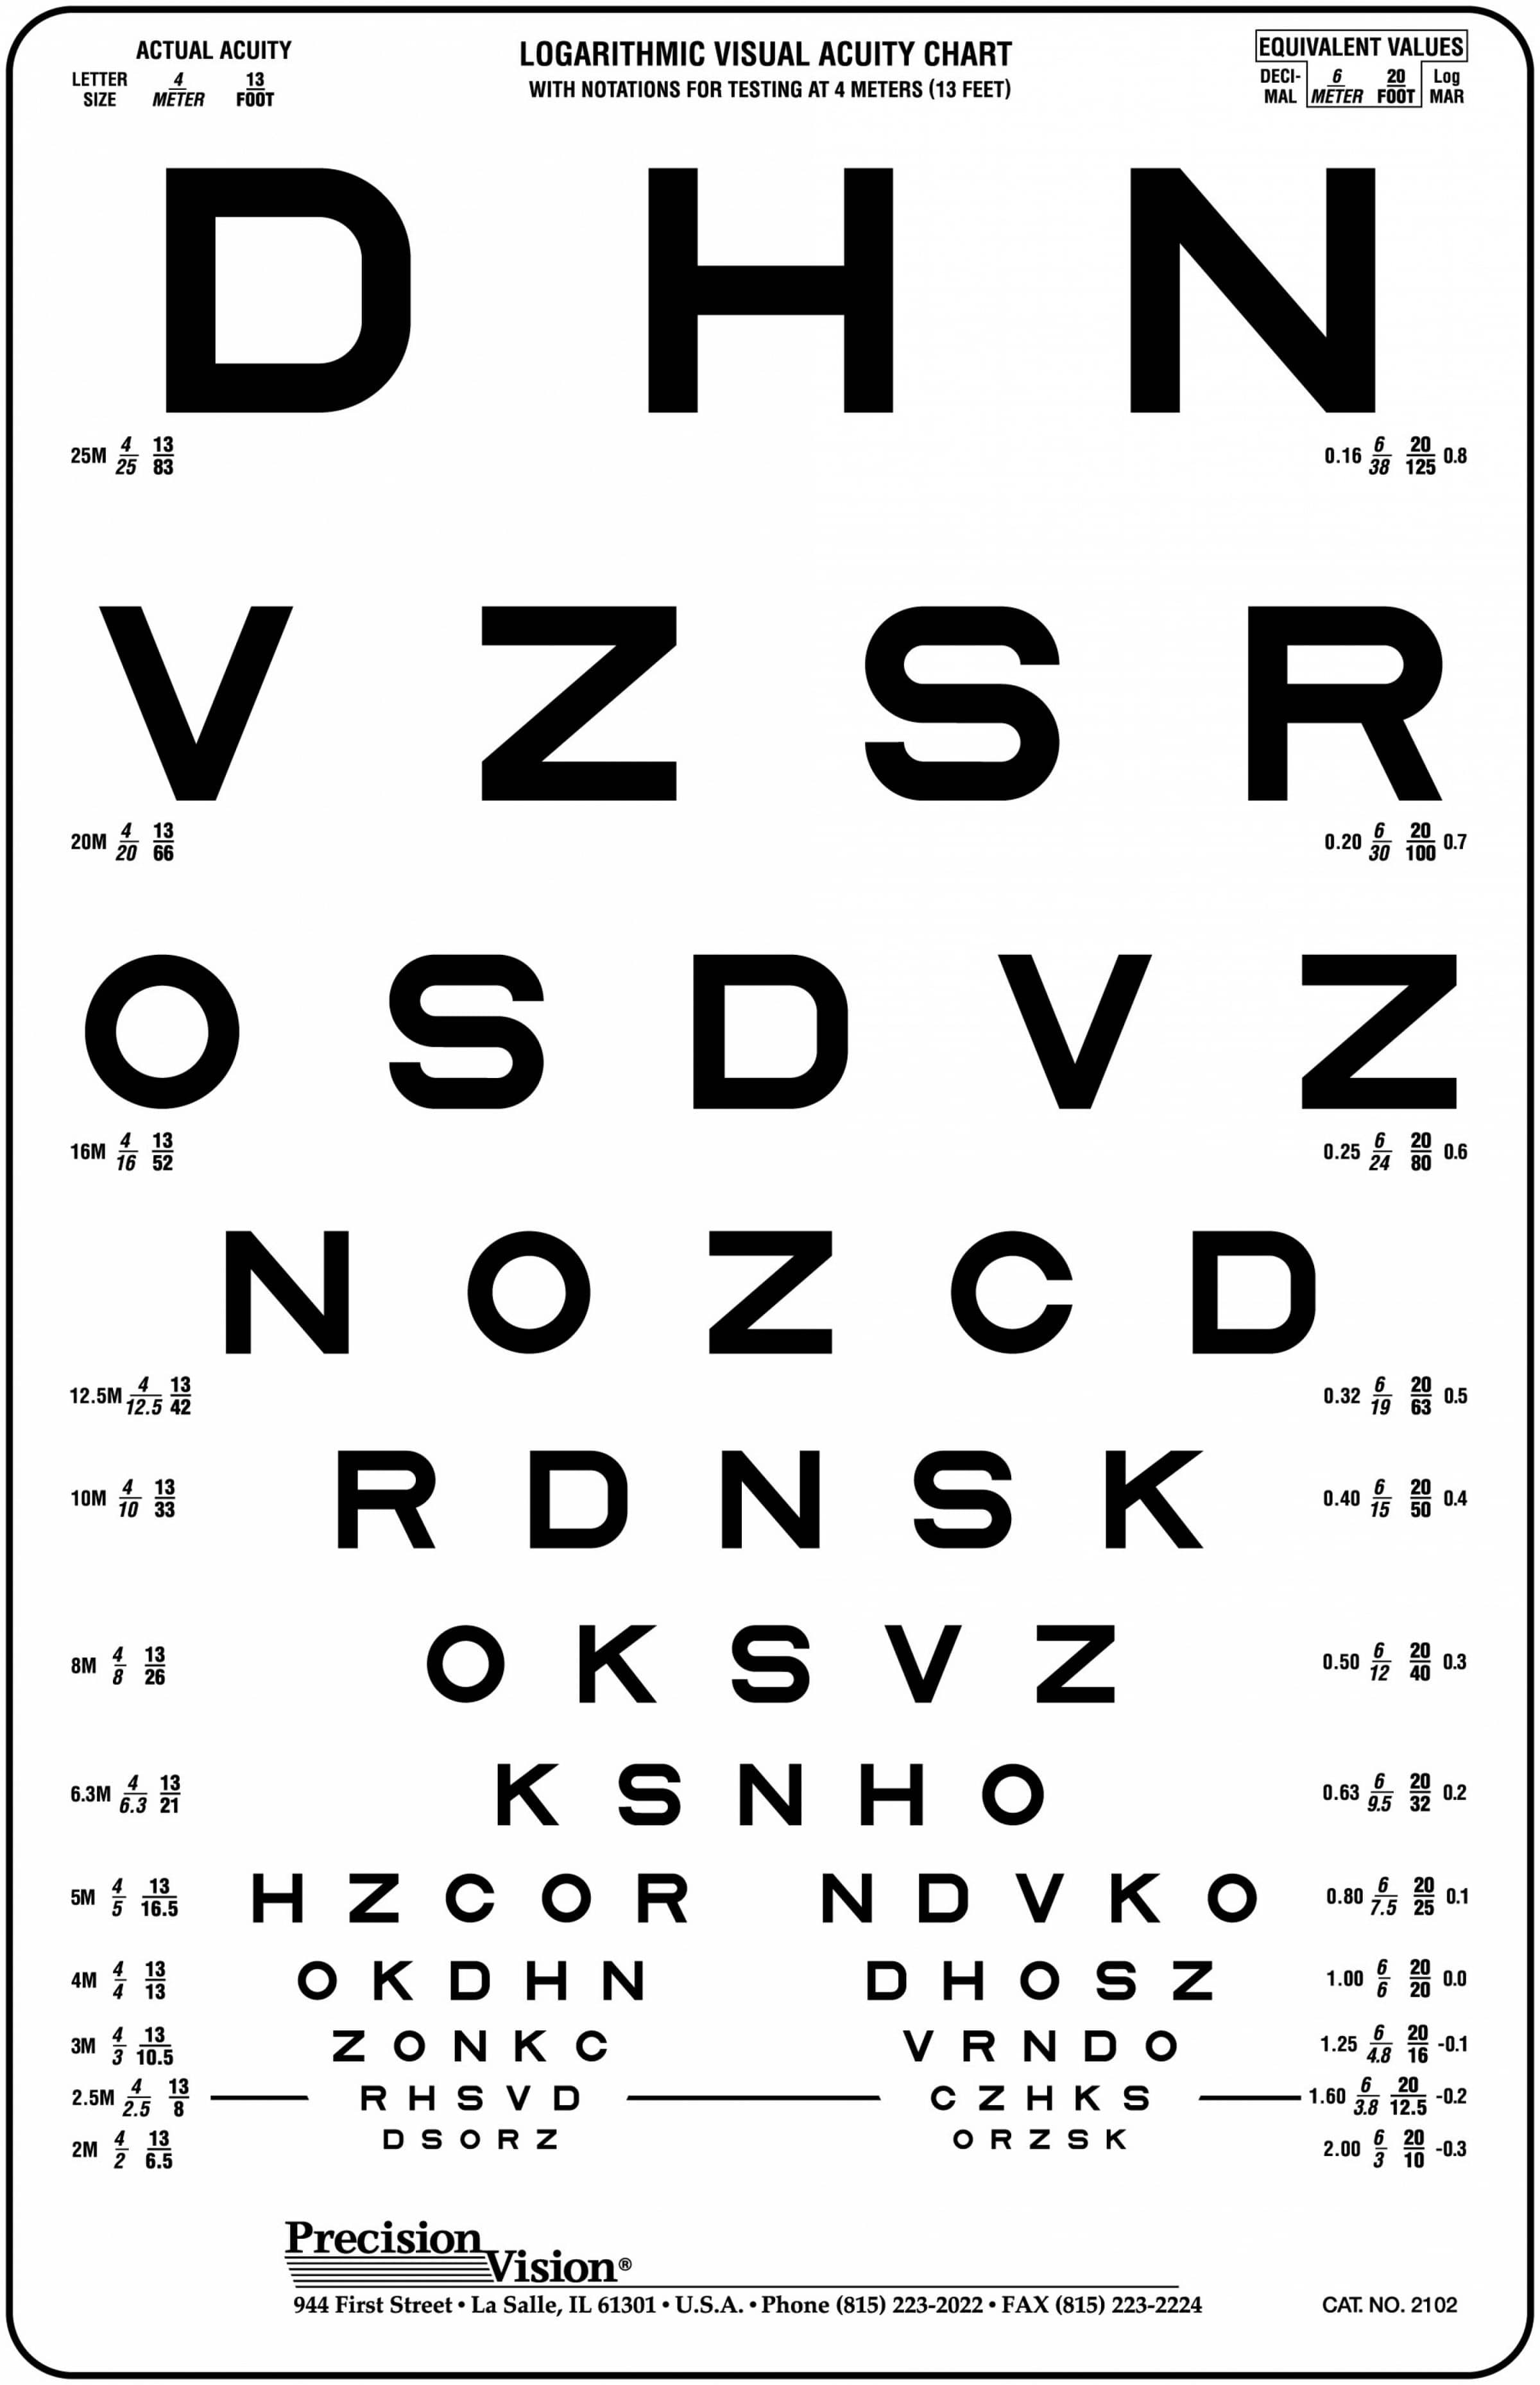 4 Meter 13 Ft High Contrast Eye Charts Precision Vision